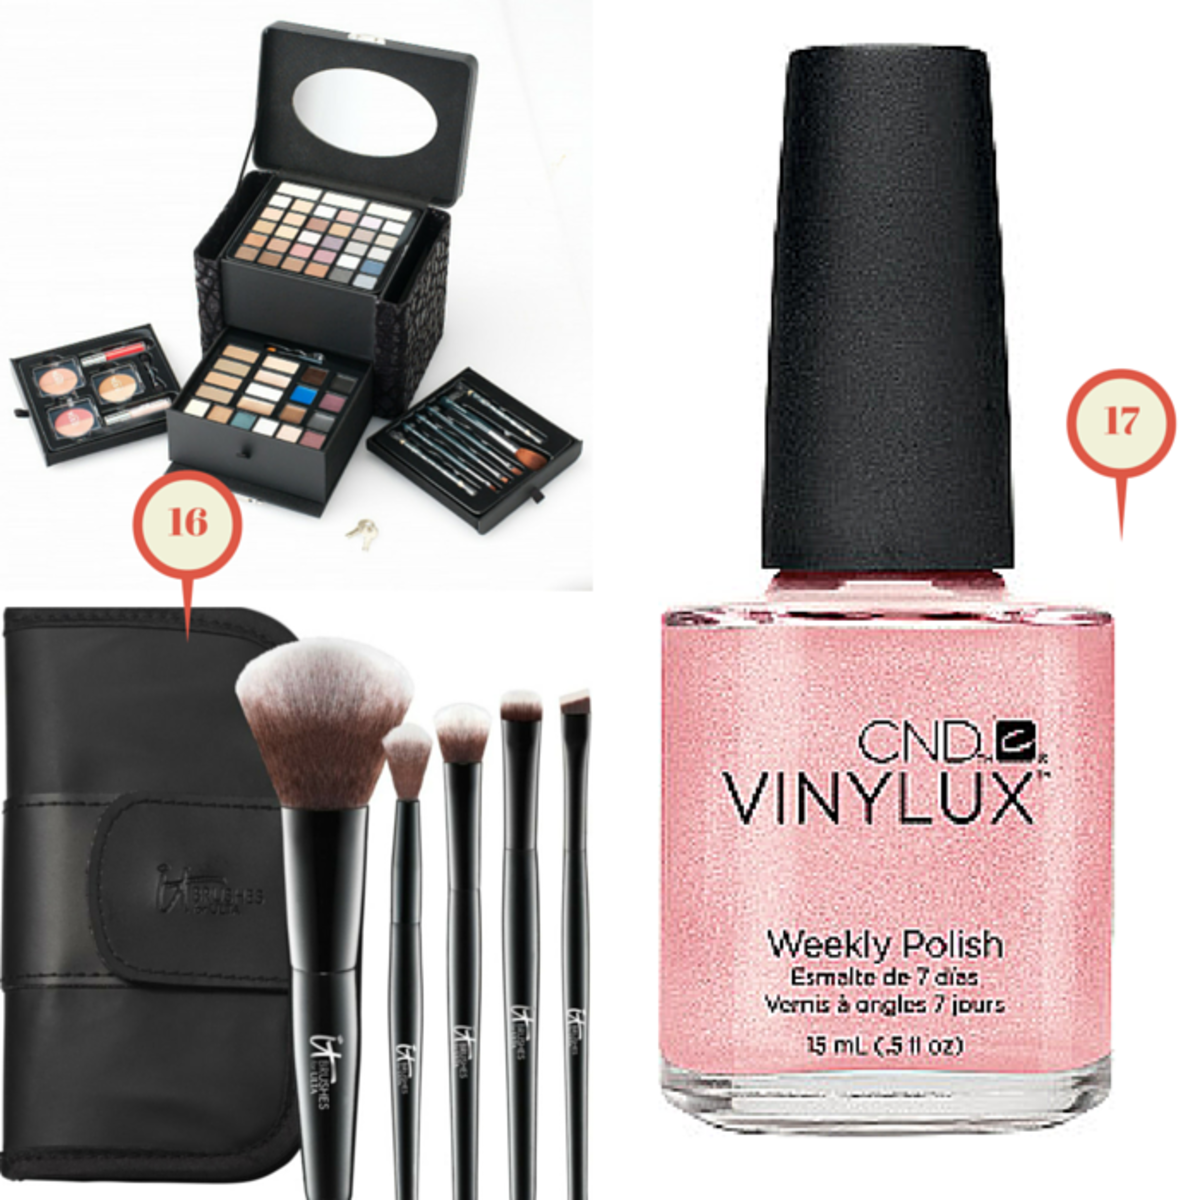 ulta, cnd nails, nail polish, makeup, beauty,